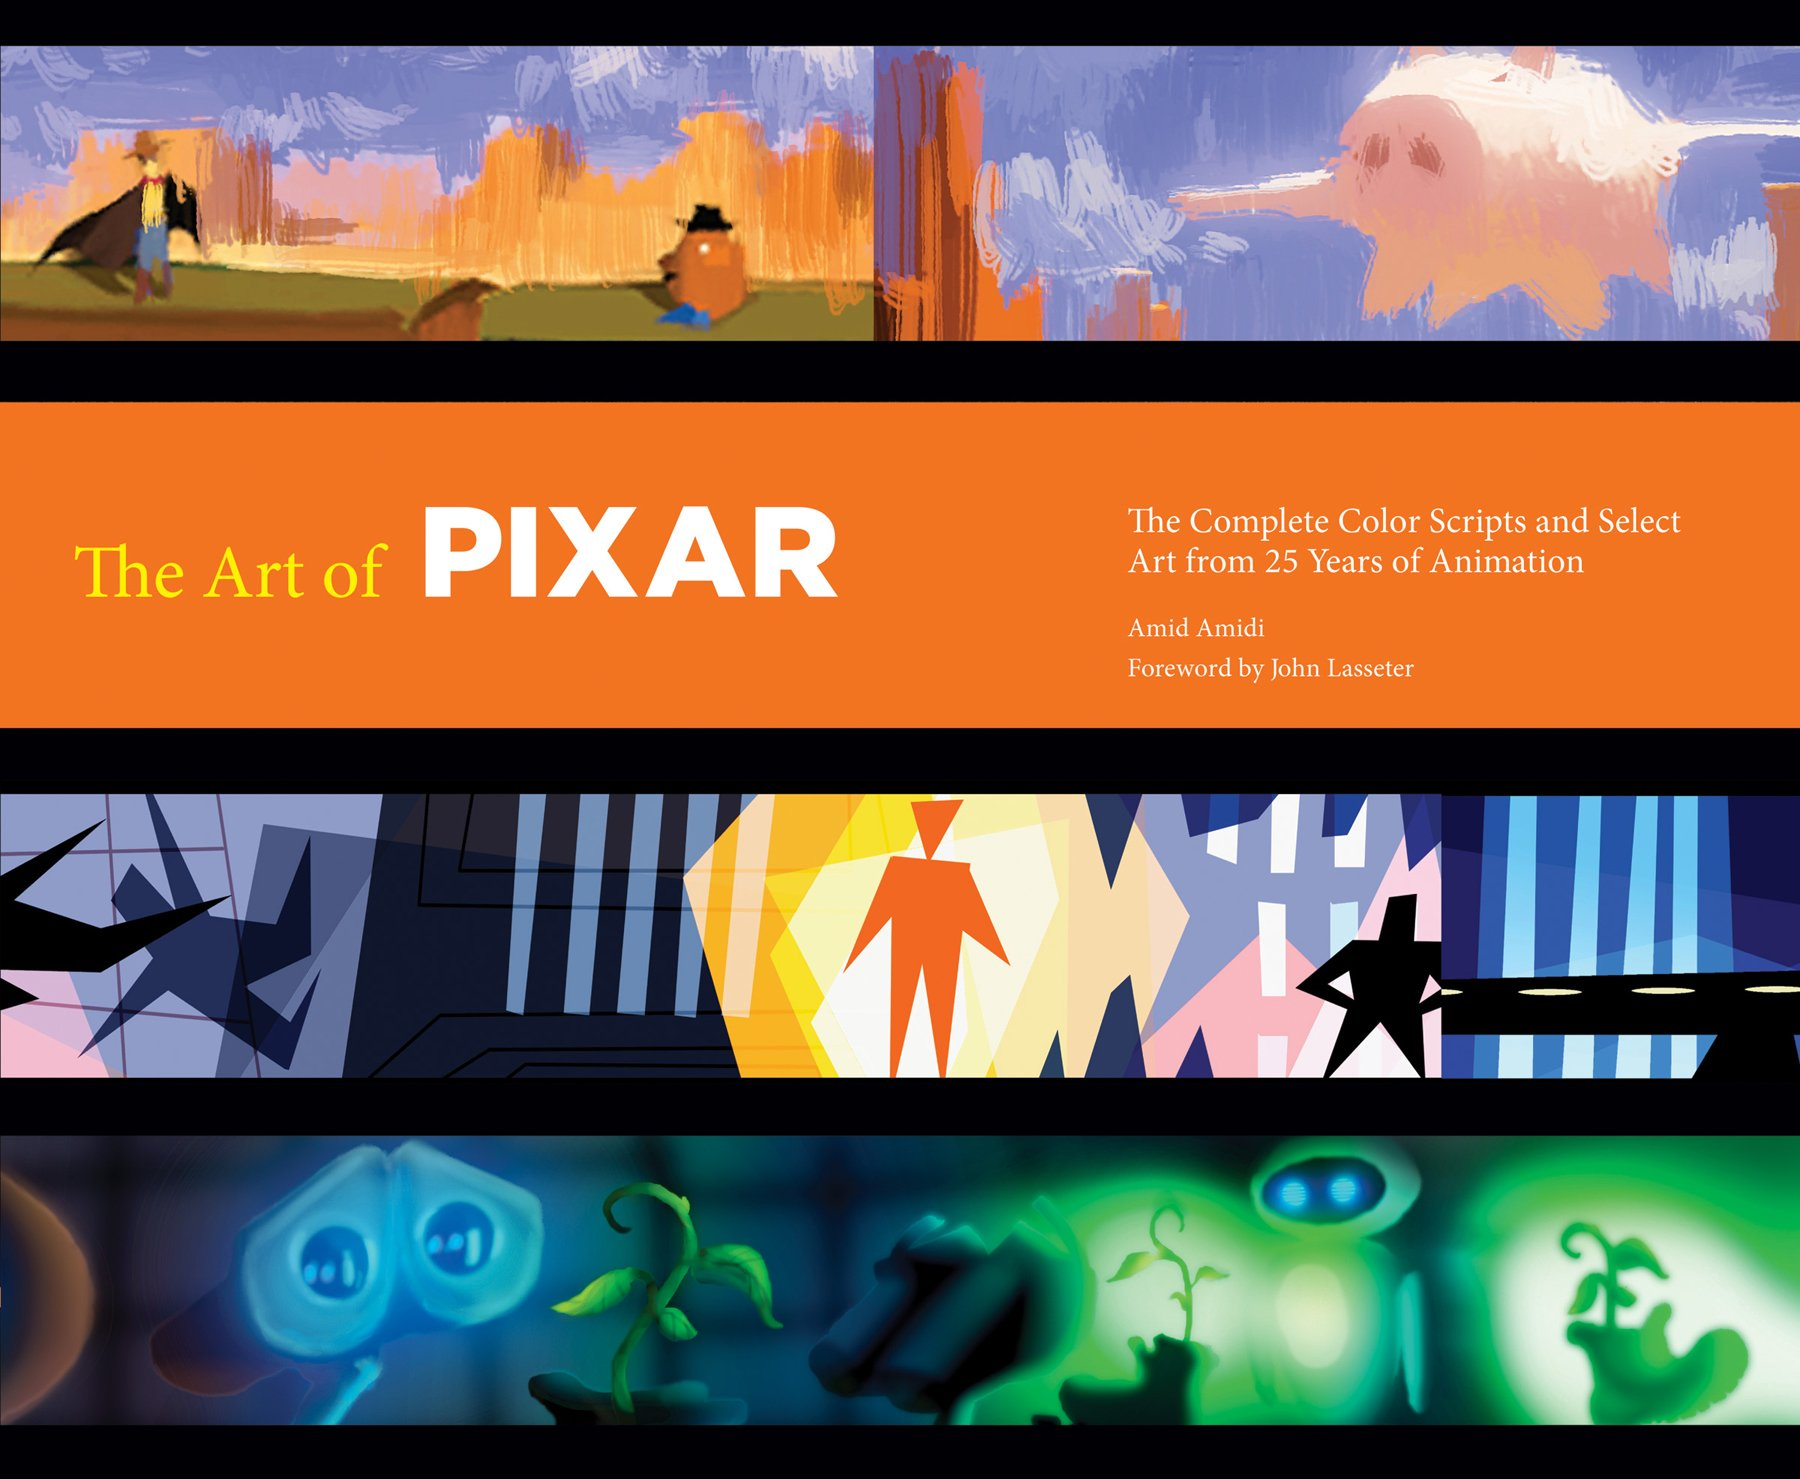 the art of pixar 25th anniv the complete color scripts and select art from 25 years of animation